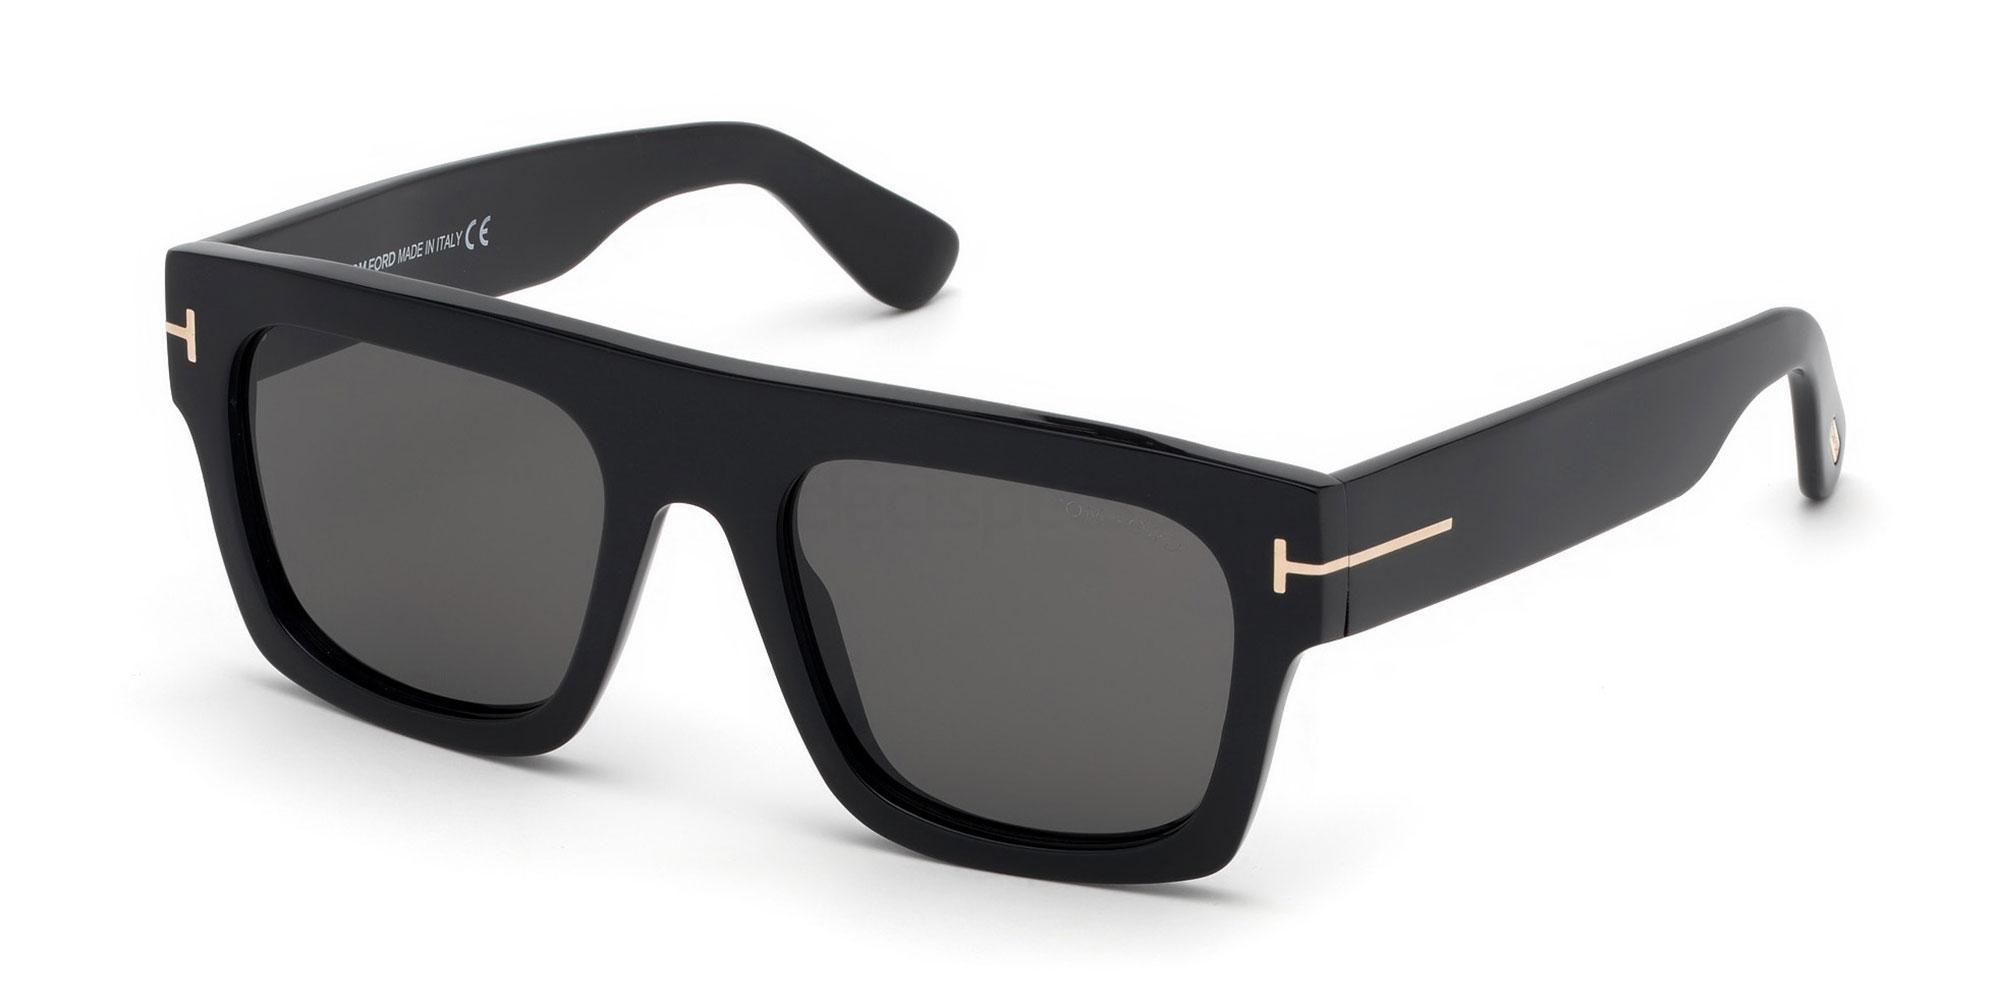 01A FT0711 Sunglasses, Tom Ford